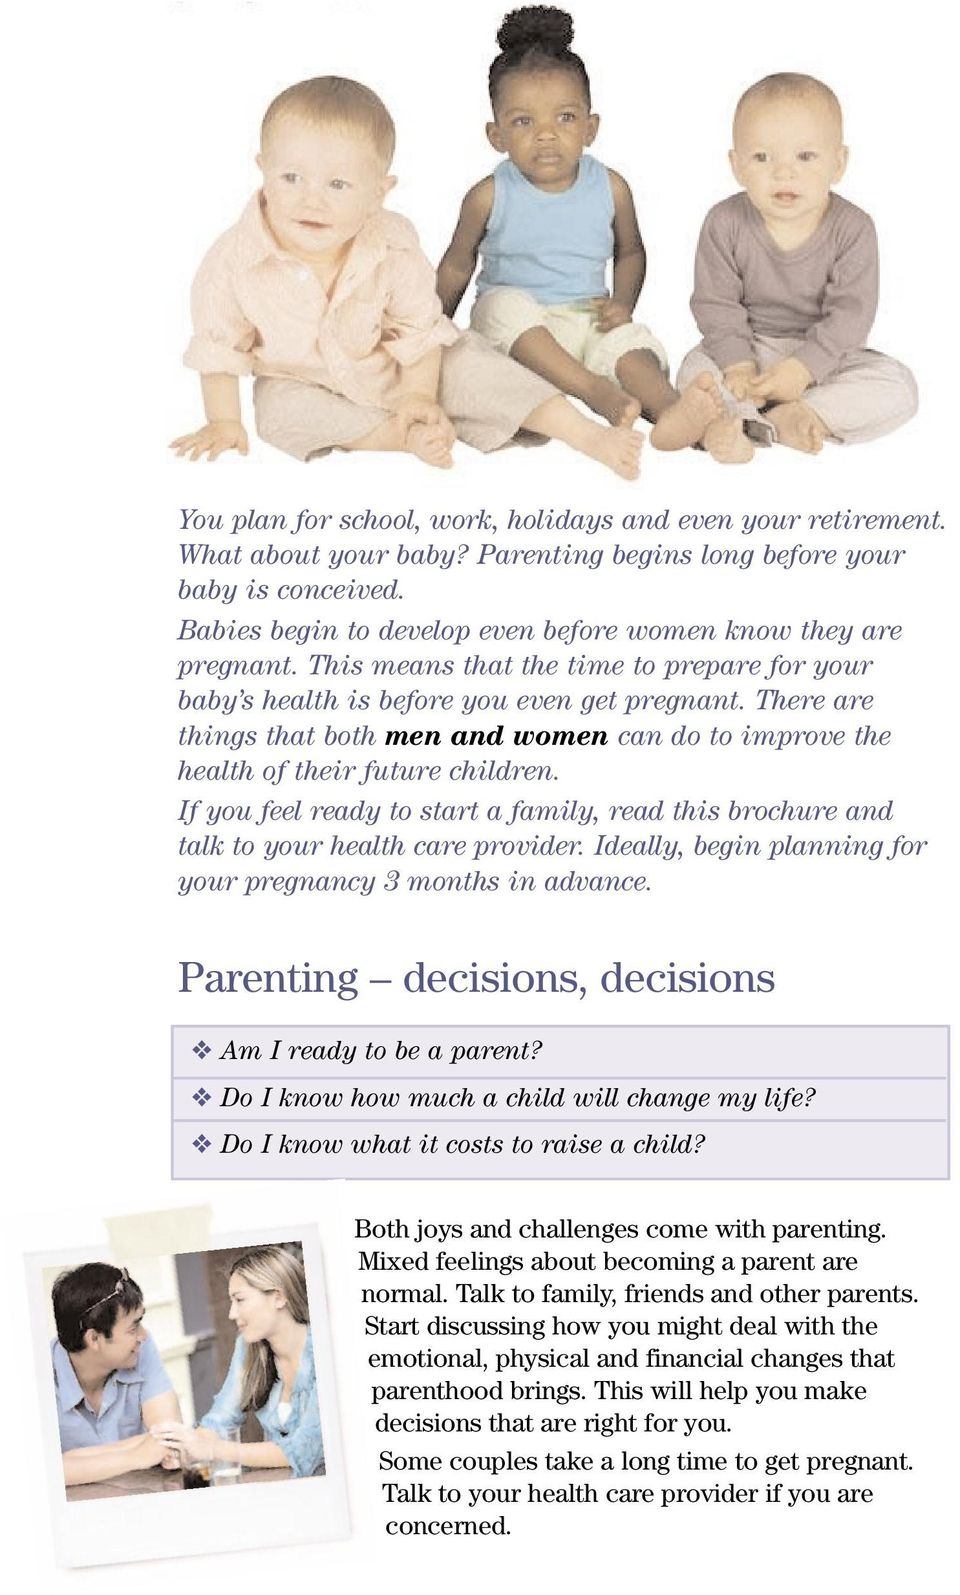 There are things that both men and women can do to improve the health of their future children. If you feel ready to start a family, read this brochure and talk to your health care provider.